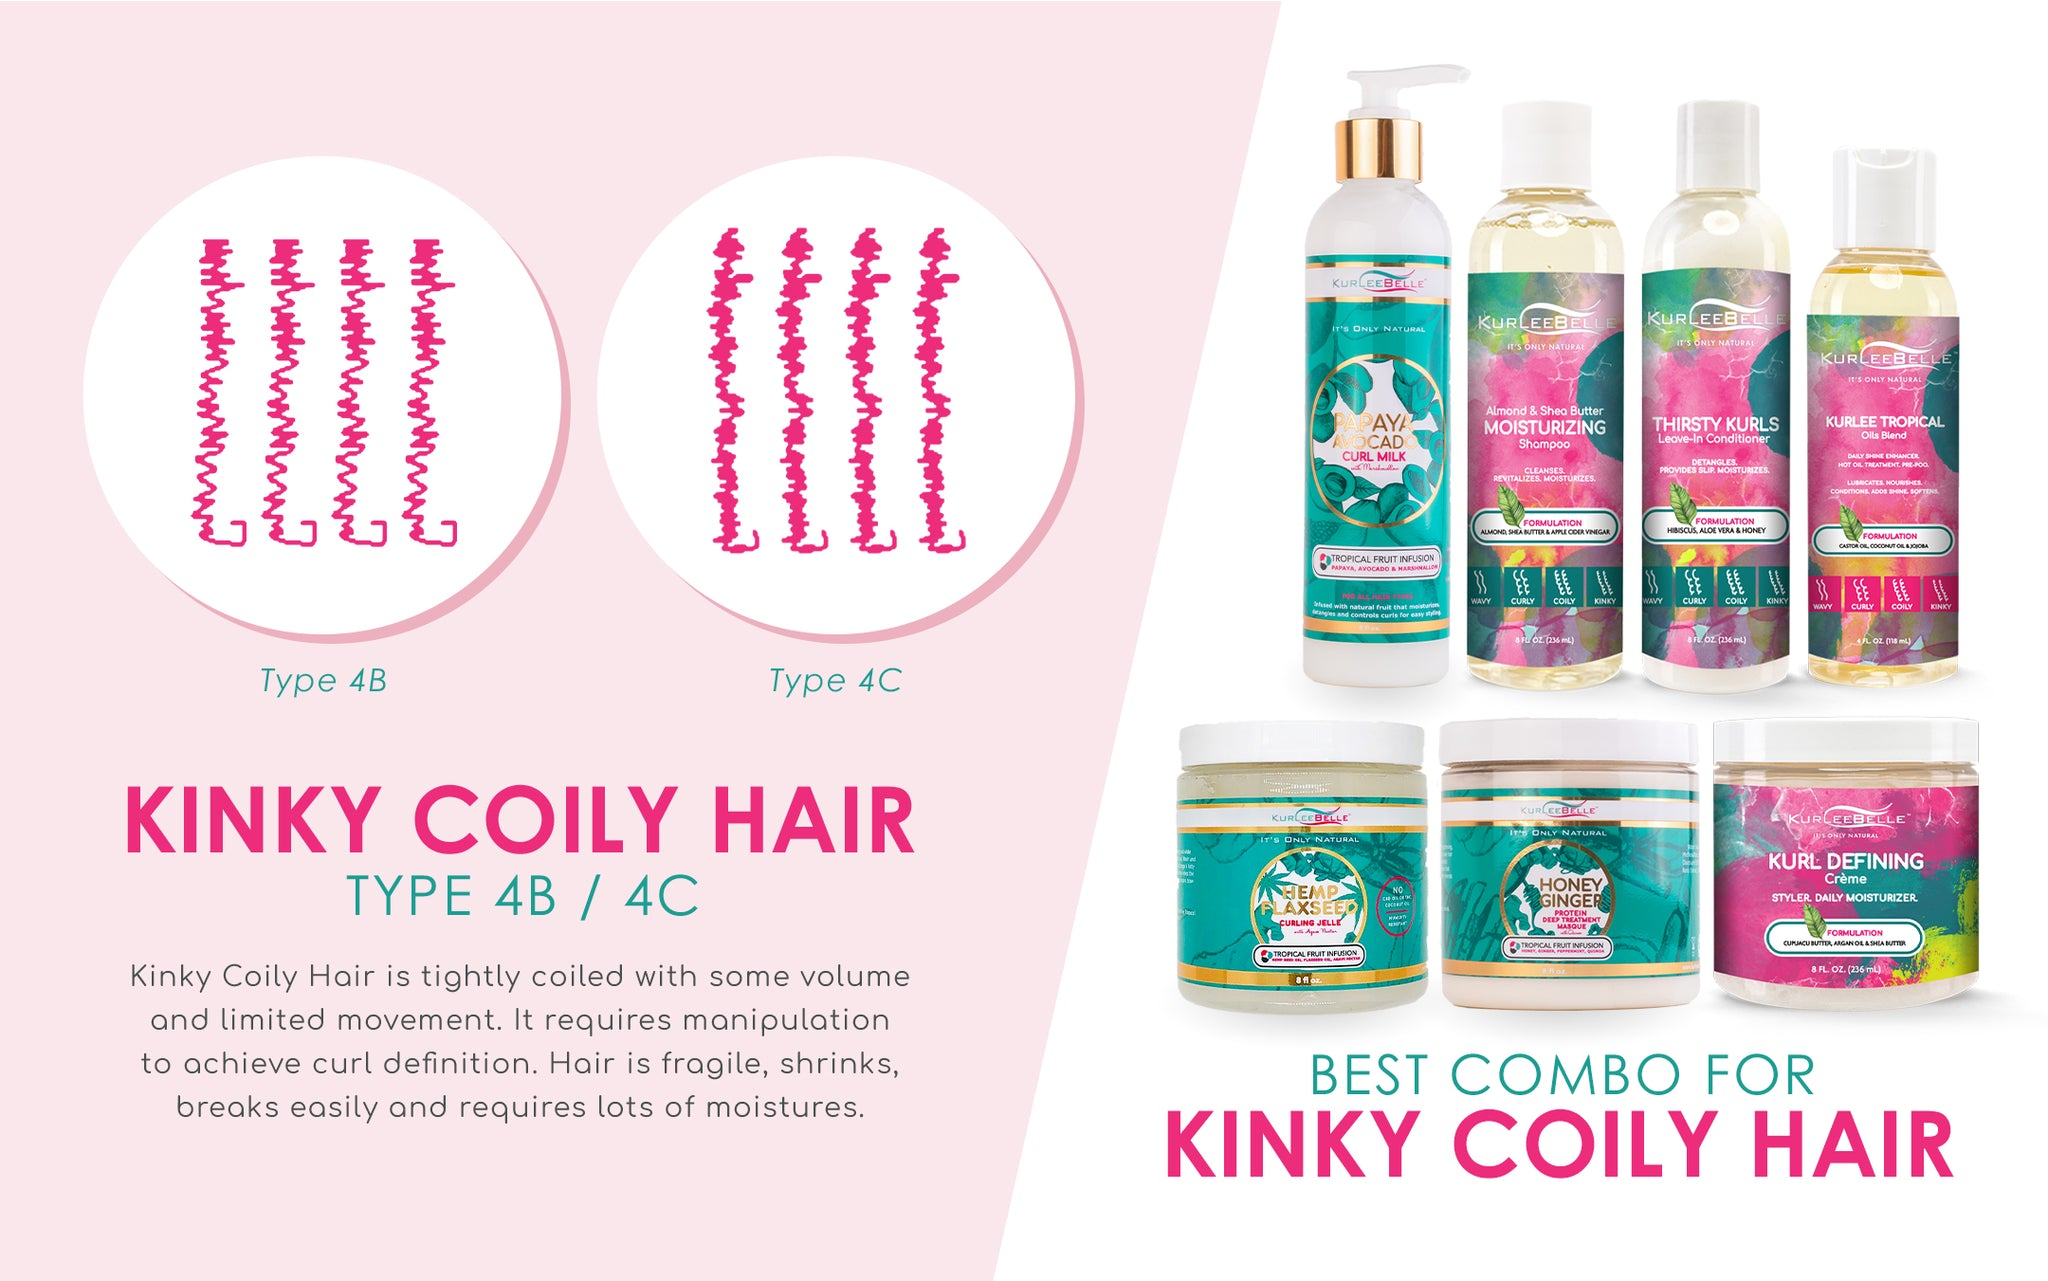 Kinky Coily Hair Best Combo